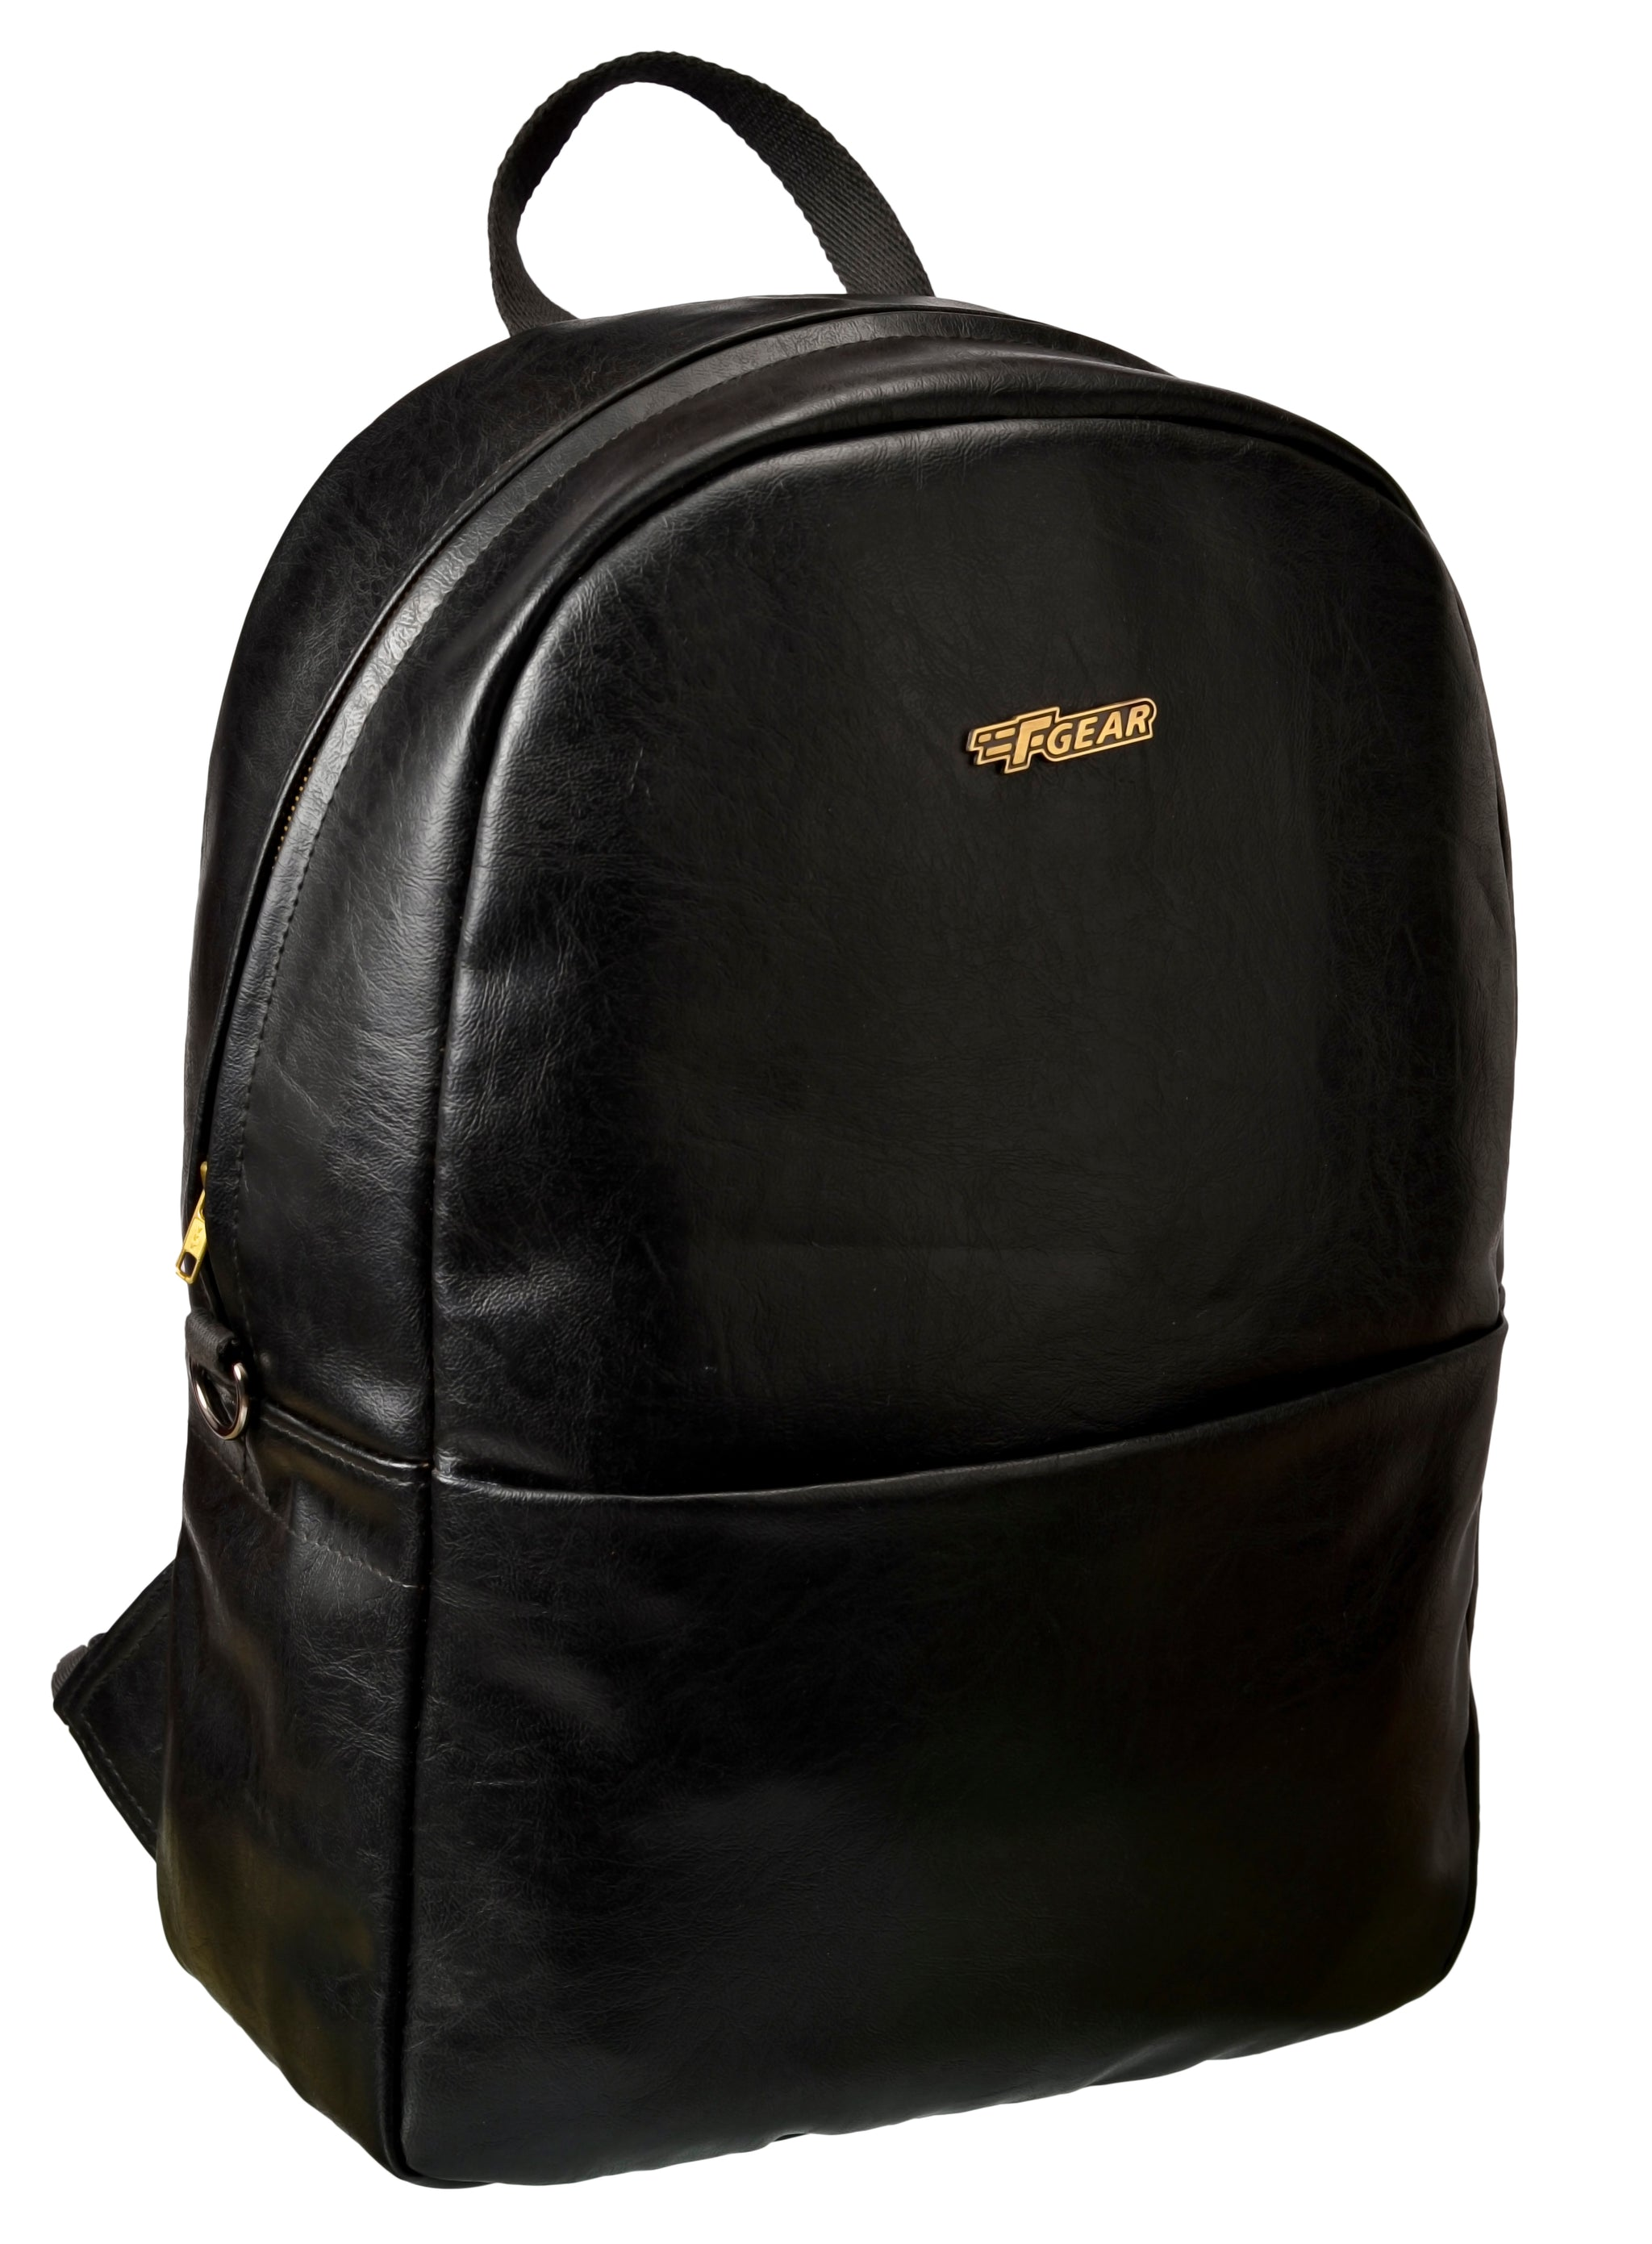 F Gear Electra Luxur 23 Ltrs Laptop Backpack (Black)